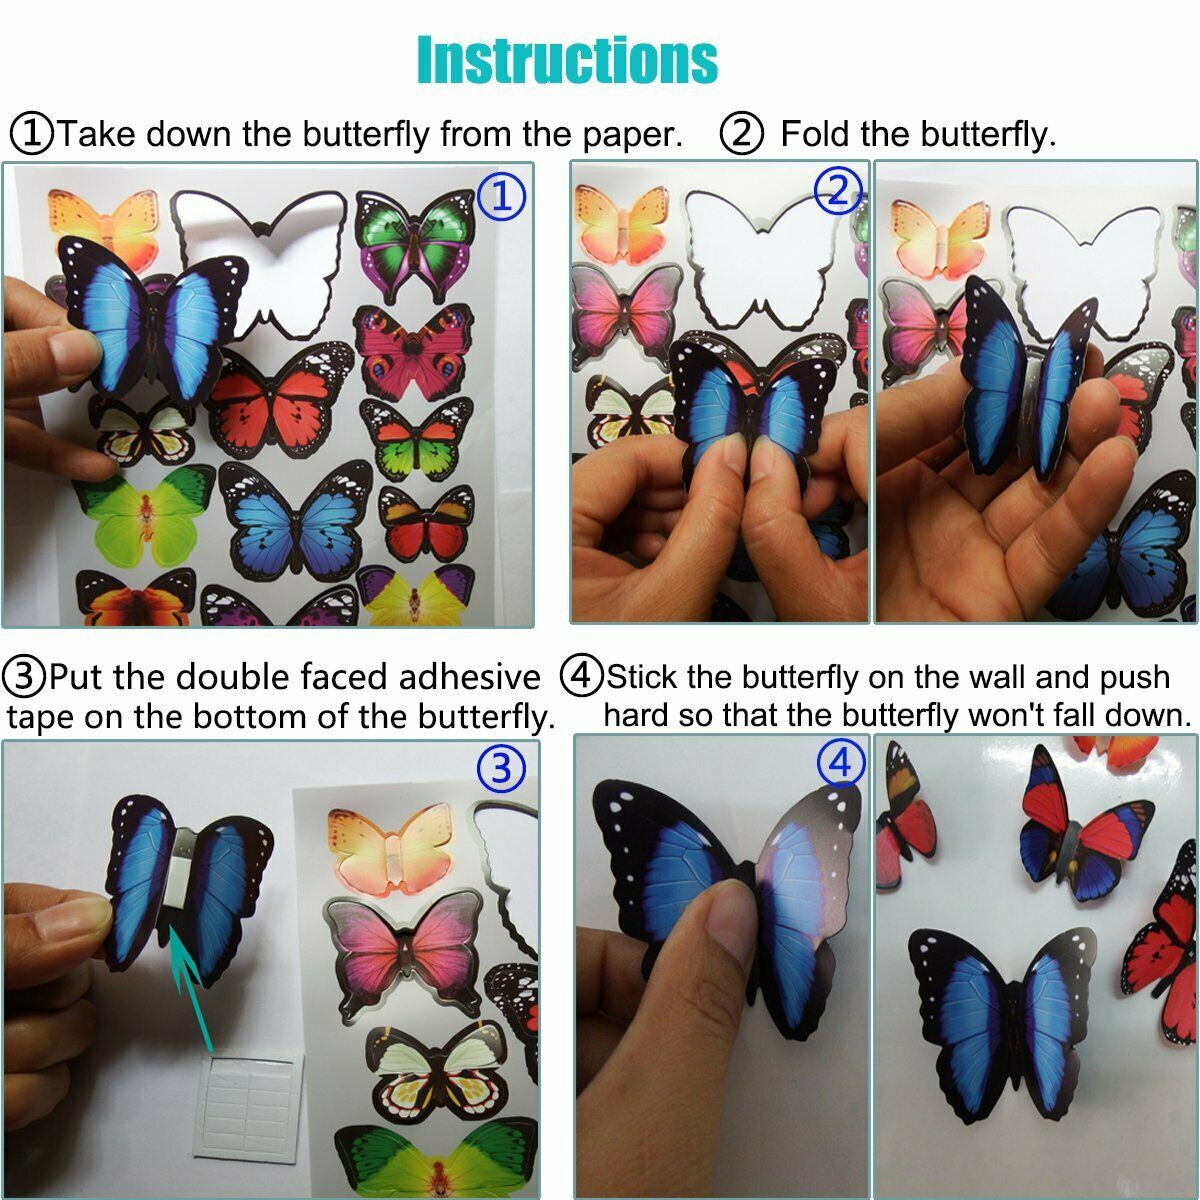 72 3D Butterfly Wall Room Decor Decorations For Teen Girls Bedroom Age 8 10-12